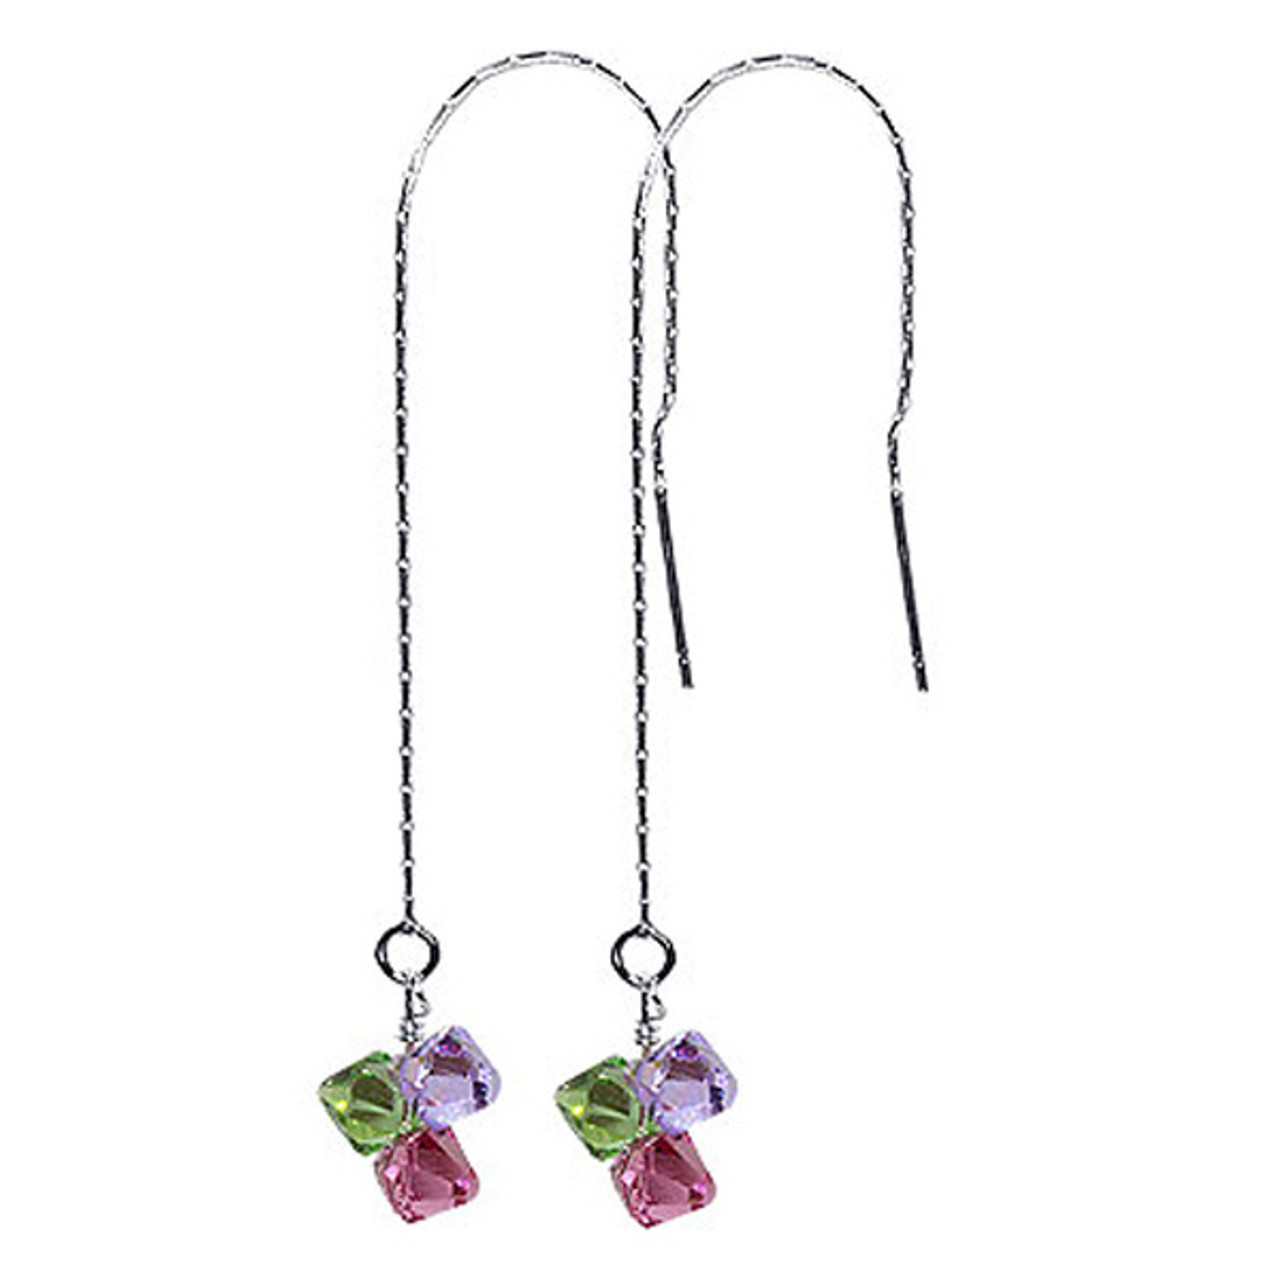 27000da7b 925 Sterling Silver Made with Swarovski Elements Green Pink and Lavender  Color Crystal Threader String Handmade ...